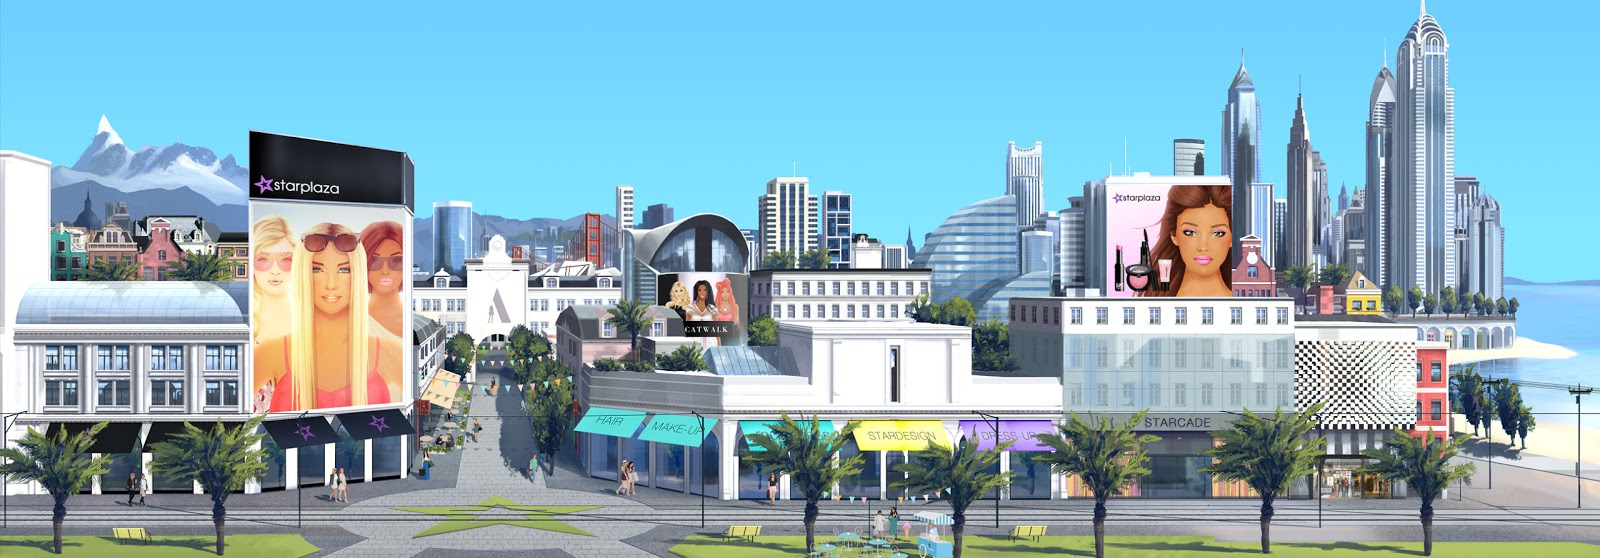 Stardoll free underneath stardoll blog is stardoll changing to now look at the map which as it says is for the downtown of the world of stardoll and that was found today in spoilers gumiabroncs Image collections